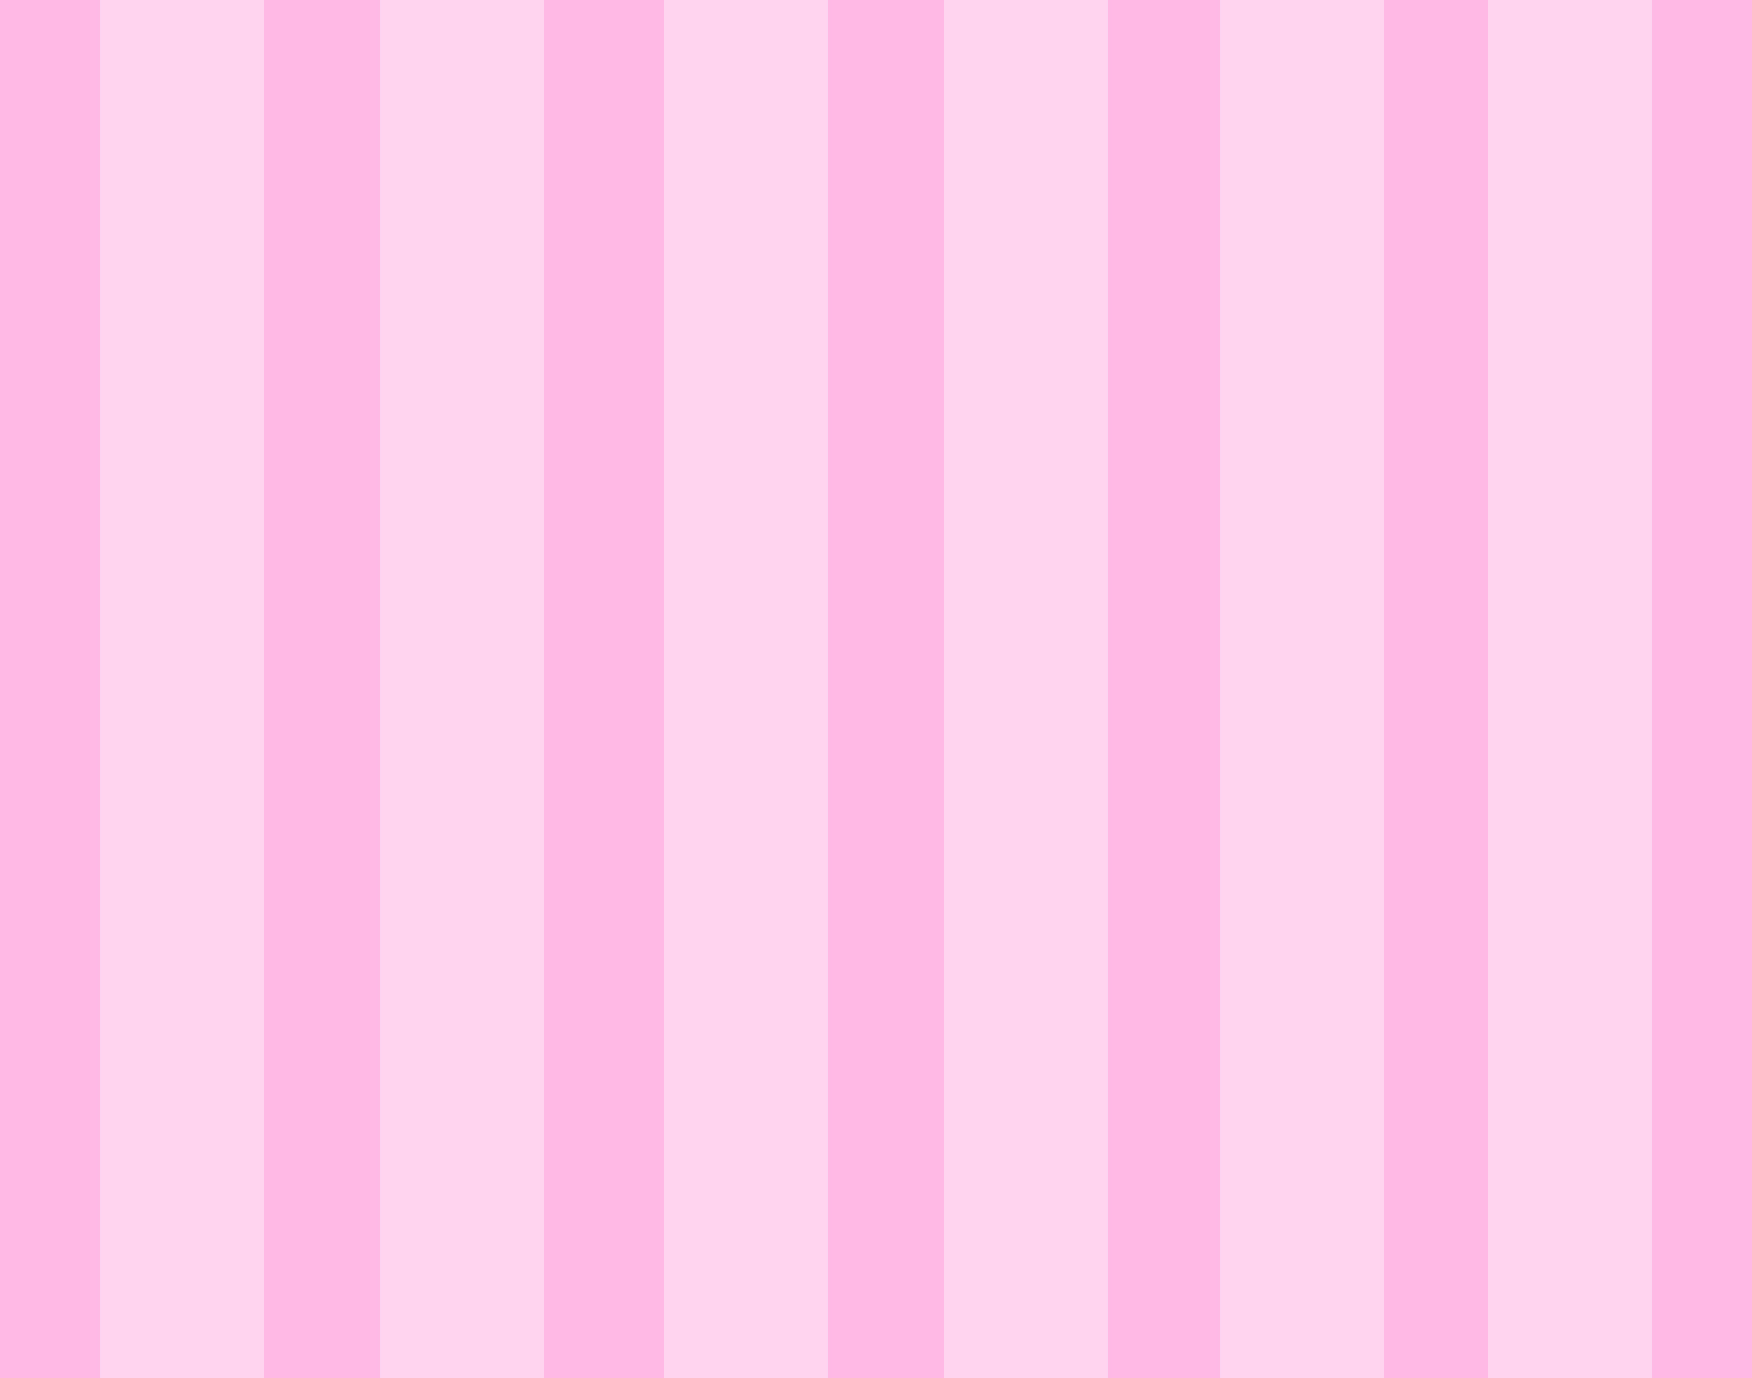 Pink And Blue Striped Wallpaper 2989 Wallpaper: Pink Stripe Wallpaper